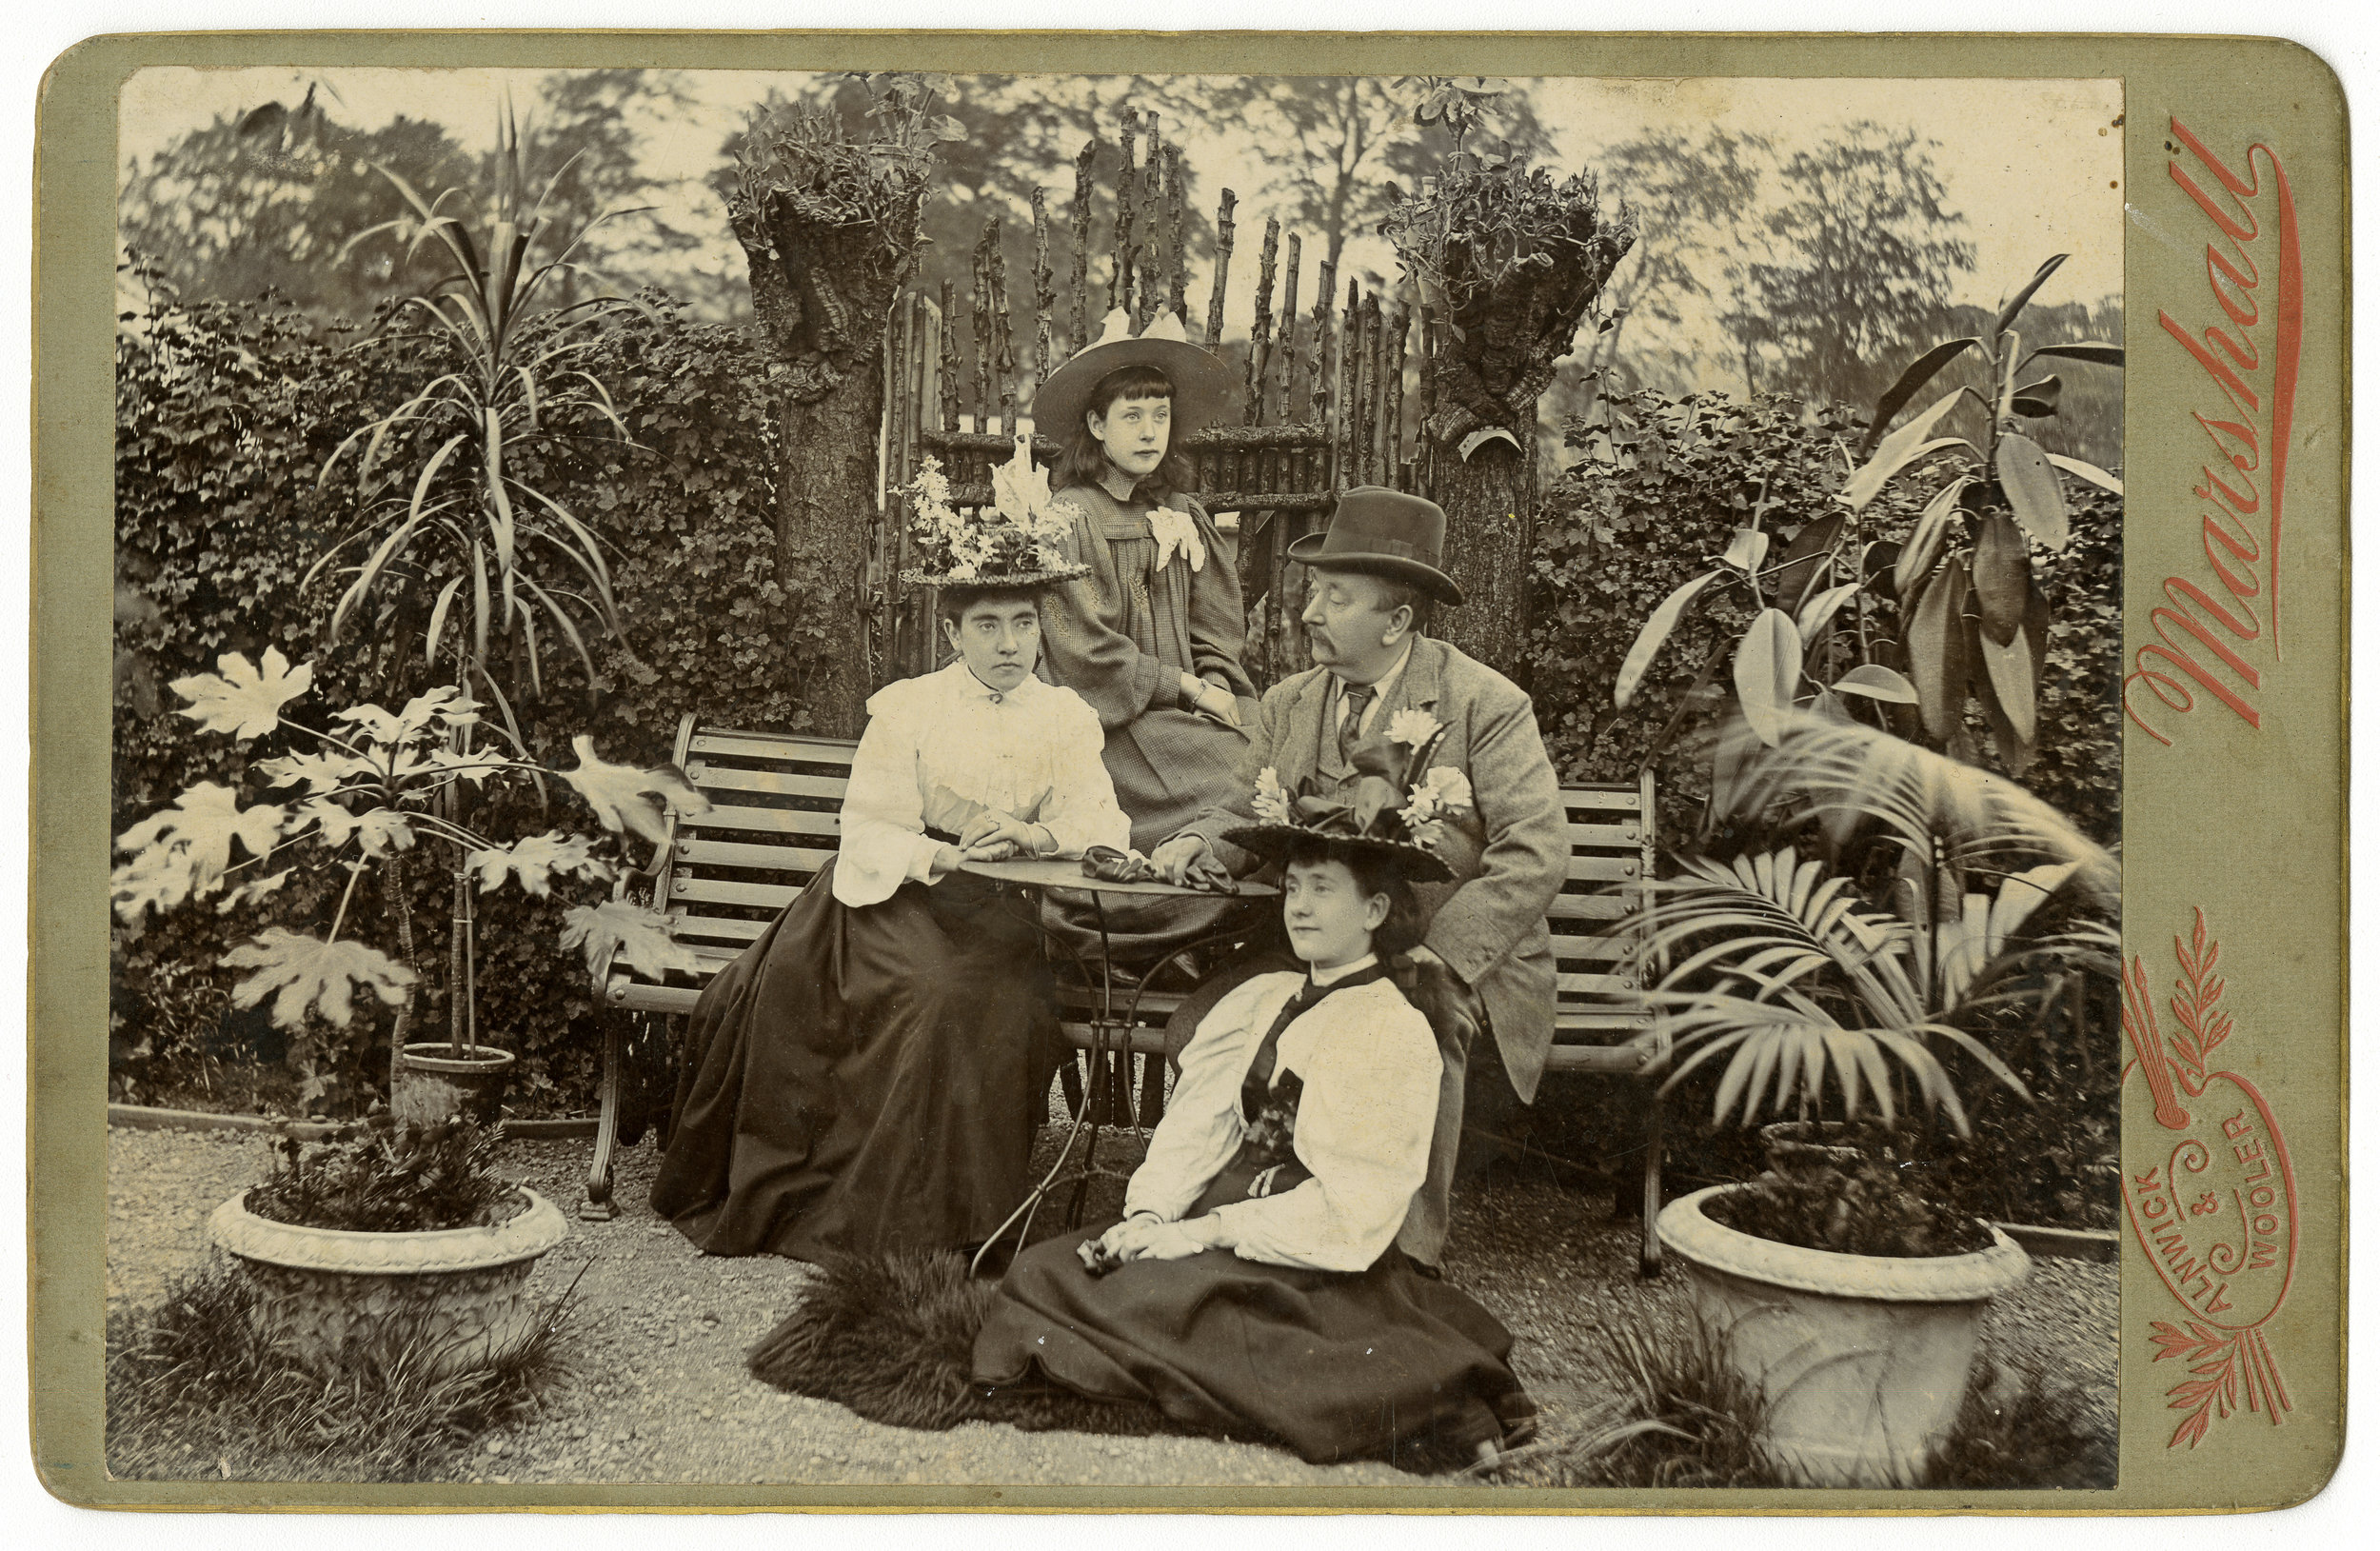 During the summer of 1897, a family pose together around a garden bench with extravagant floral hats and potted palms.